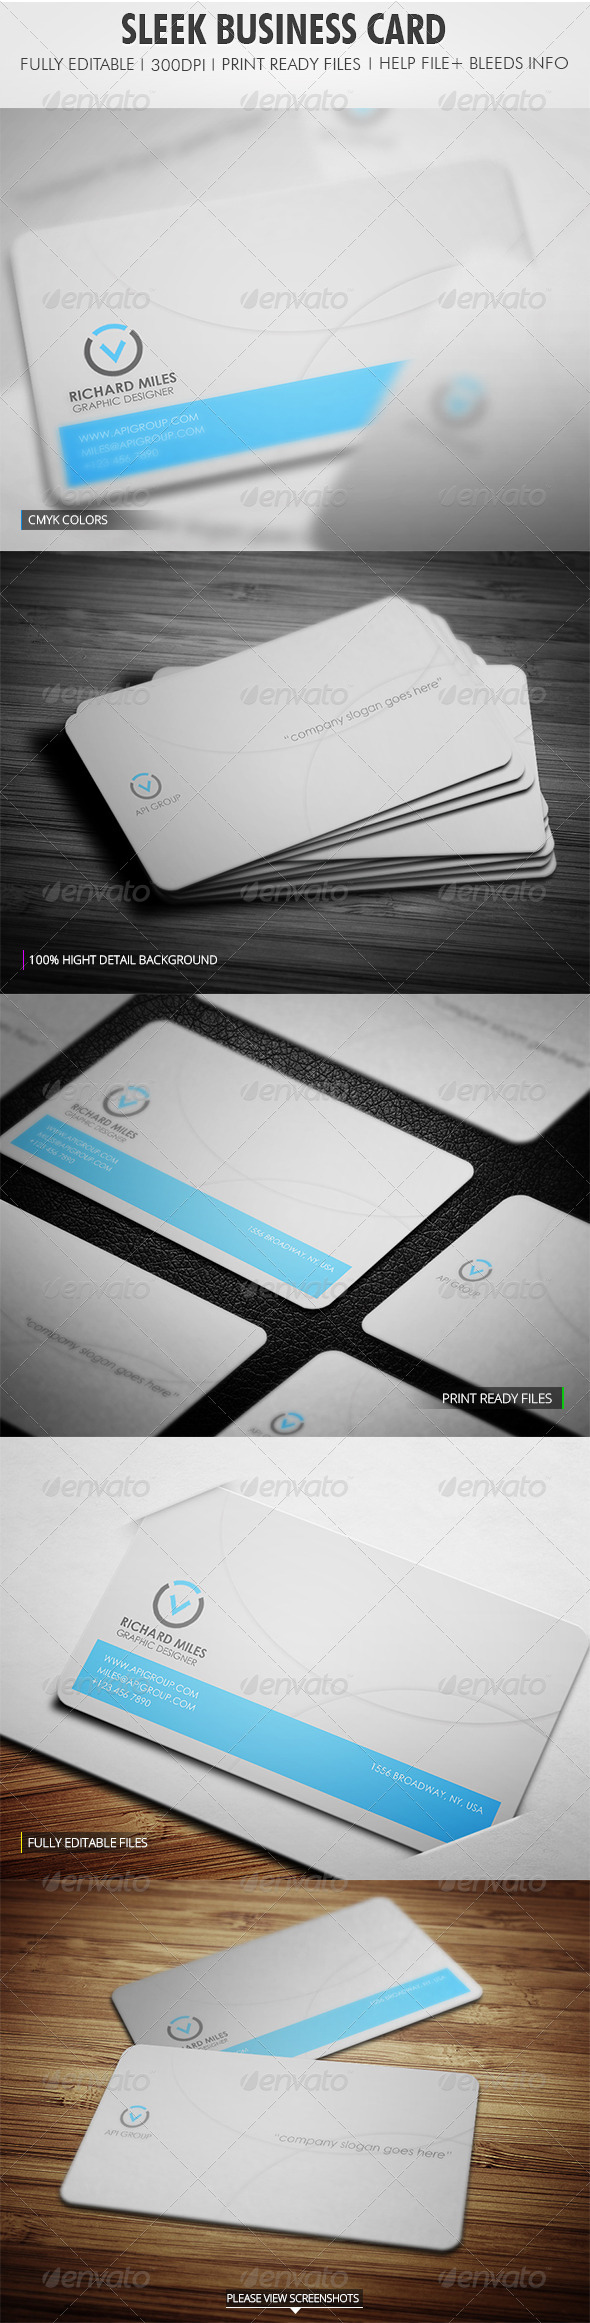 GraphicRiver Sleek Business Card 4158241